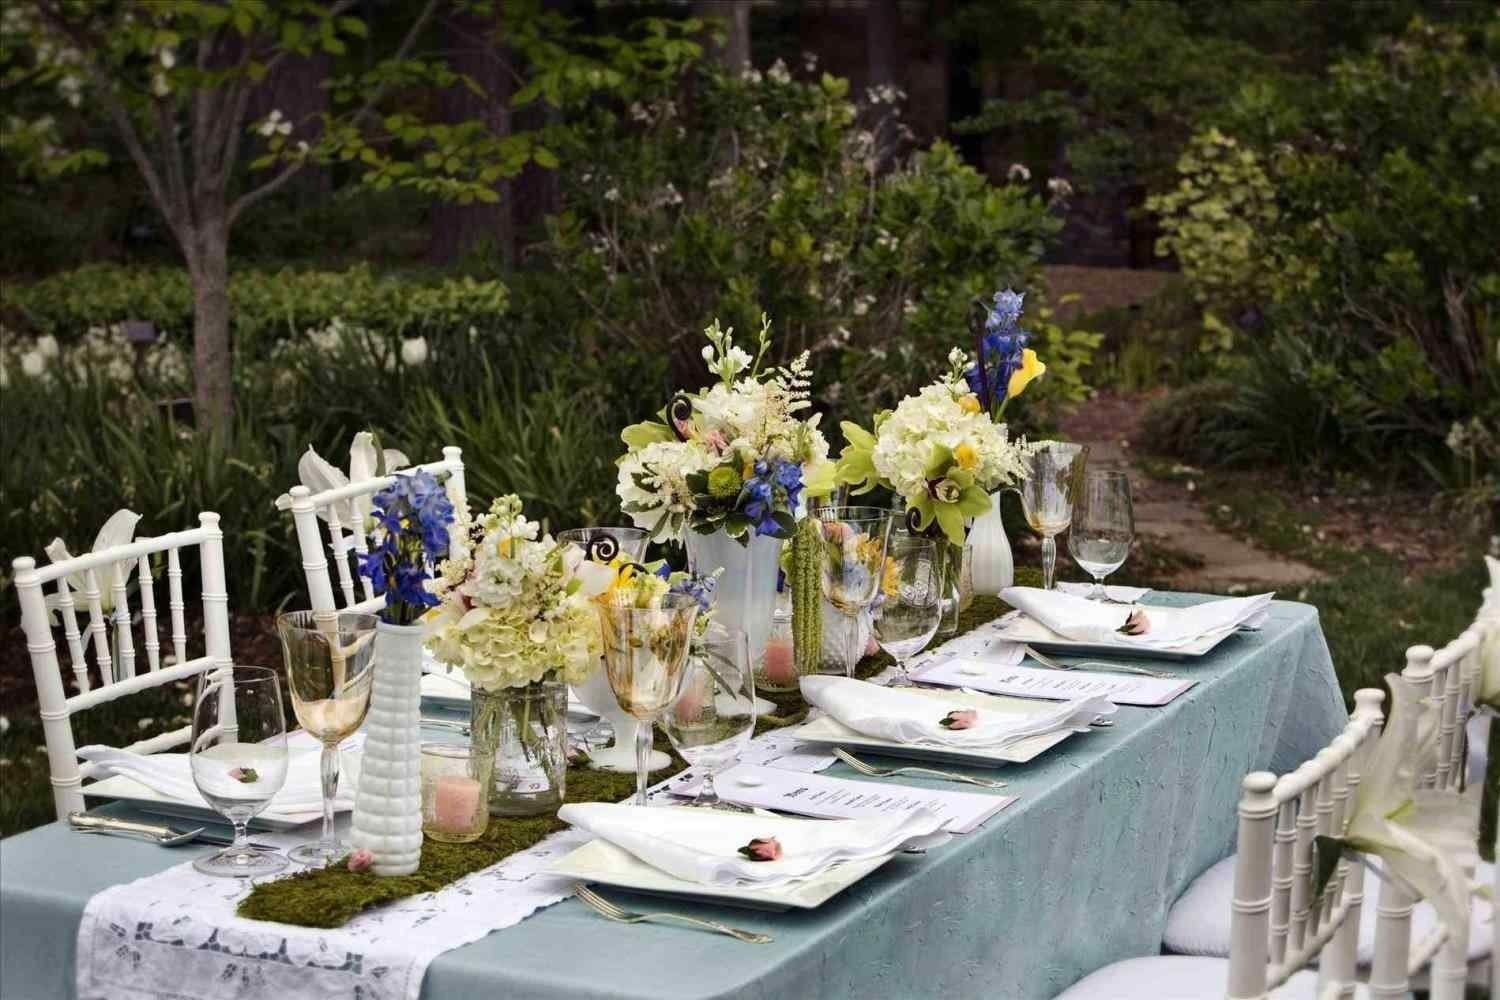 10 Attractive Small Wedding Ideas For Summer best small wedding ideas for summer your meme of backyard popular